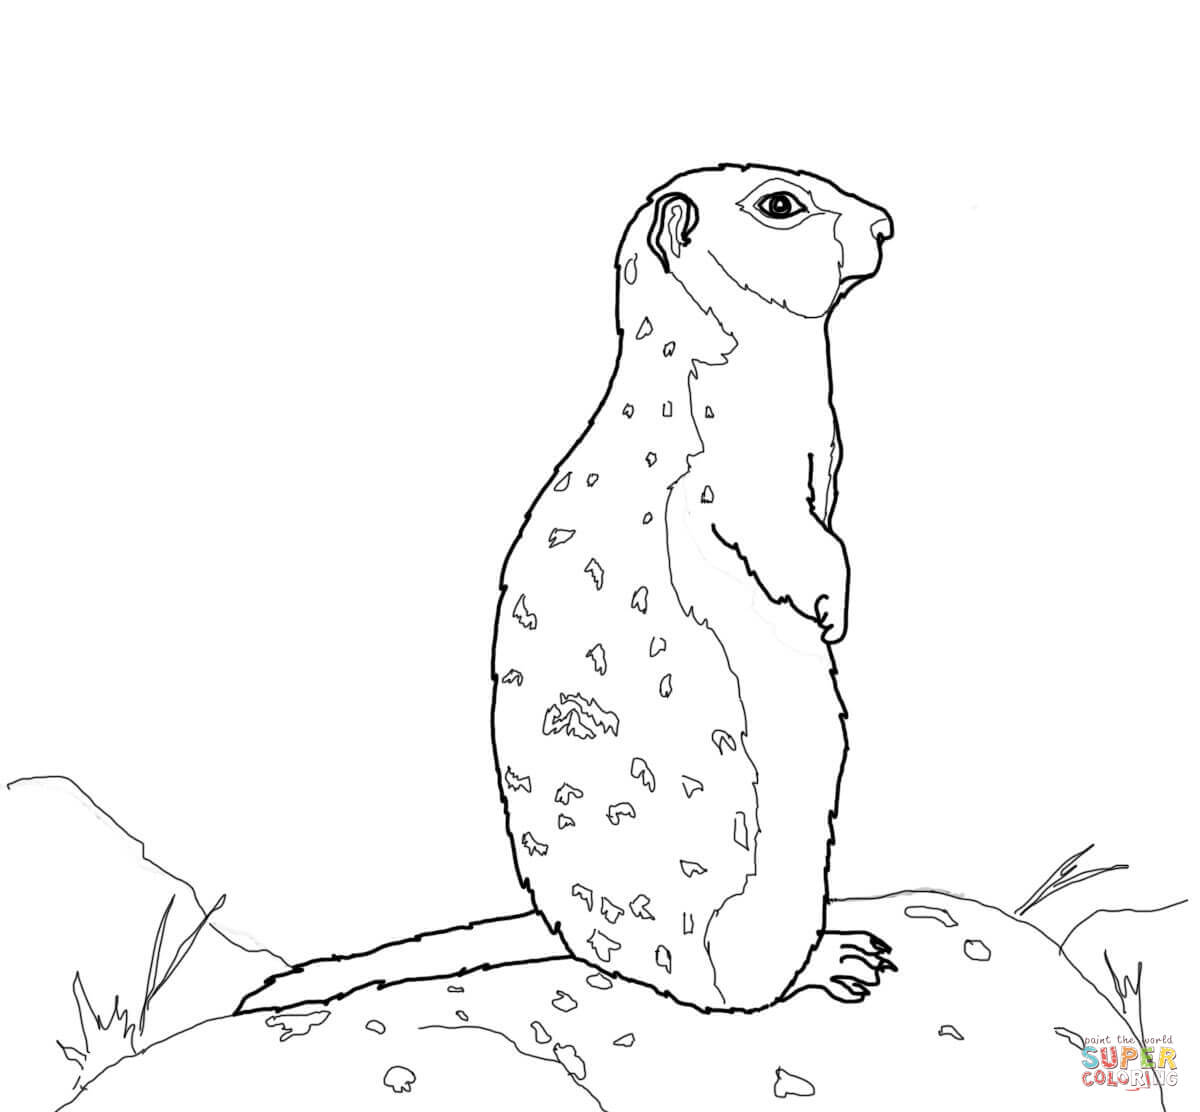 Arctic Ground Squirrel Stands on a Rock coloring page.